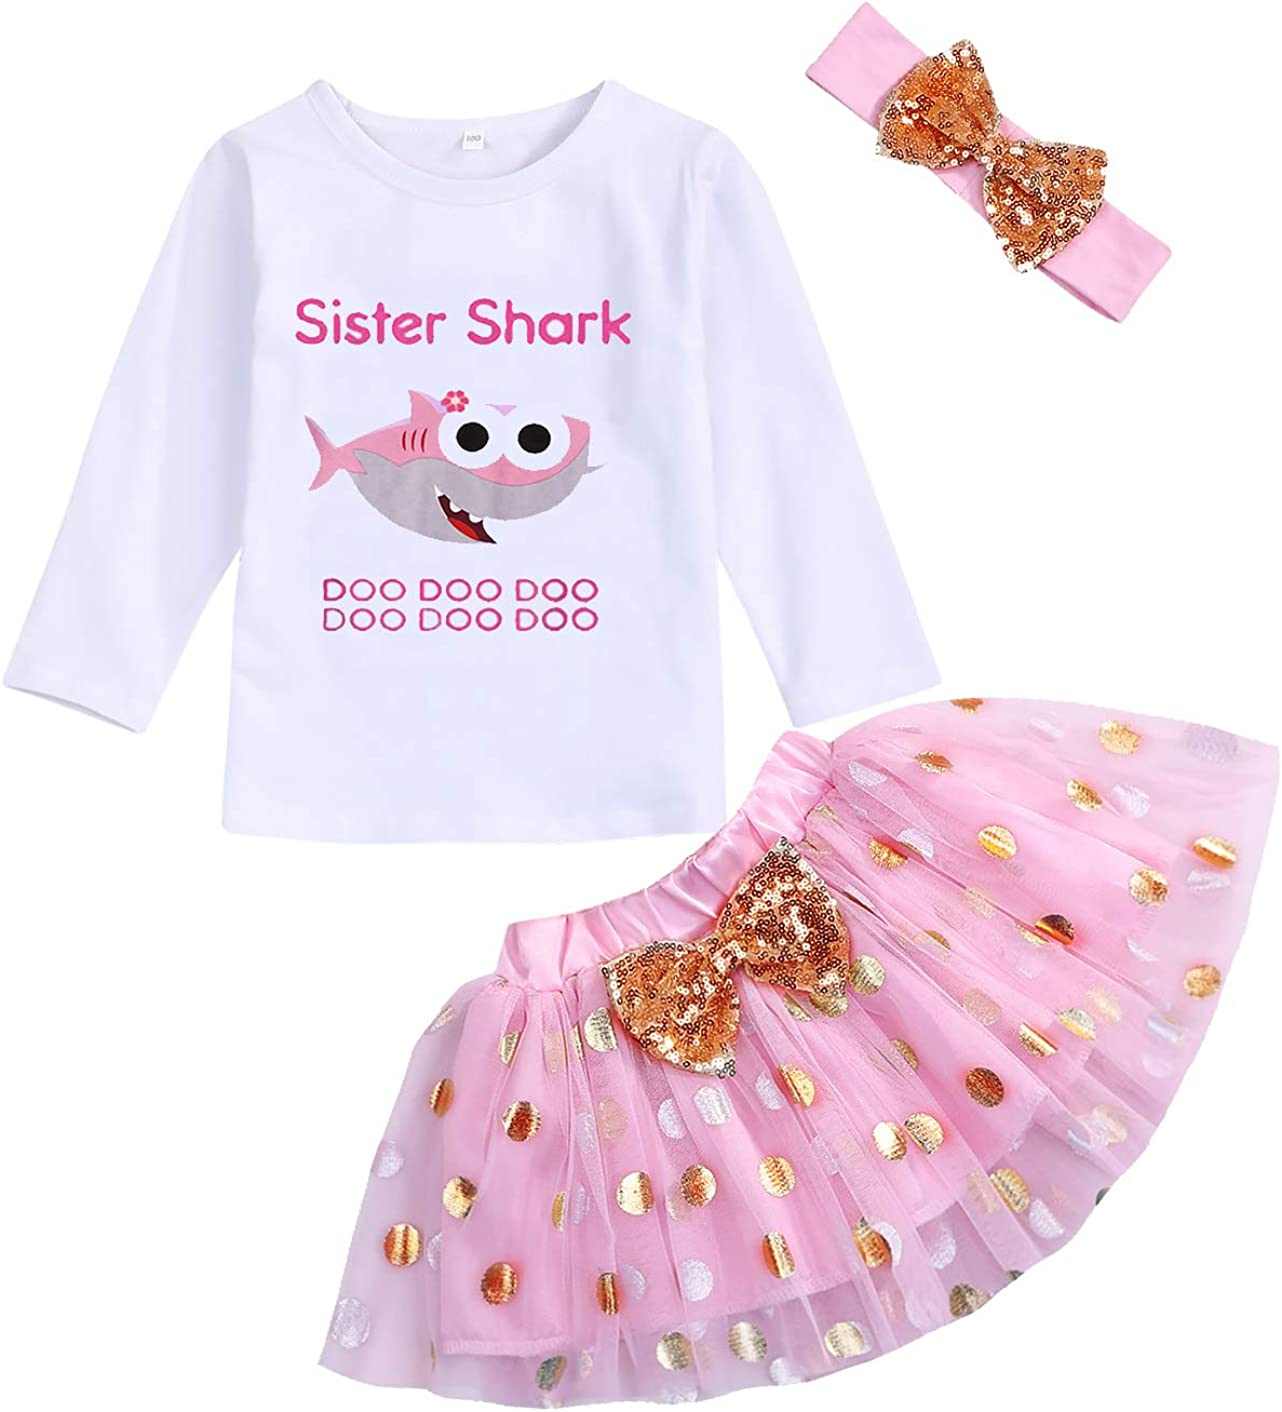 Toddler Baby Kid Girls Sister Shark Outfits Long Sleeve T-Shirt Top+Tutu Skirt with Headband Clothing Set